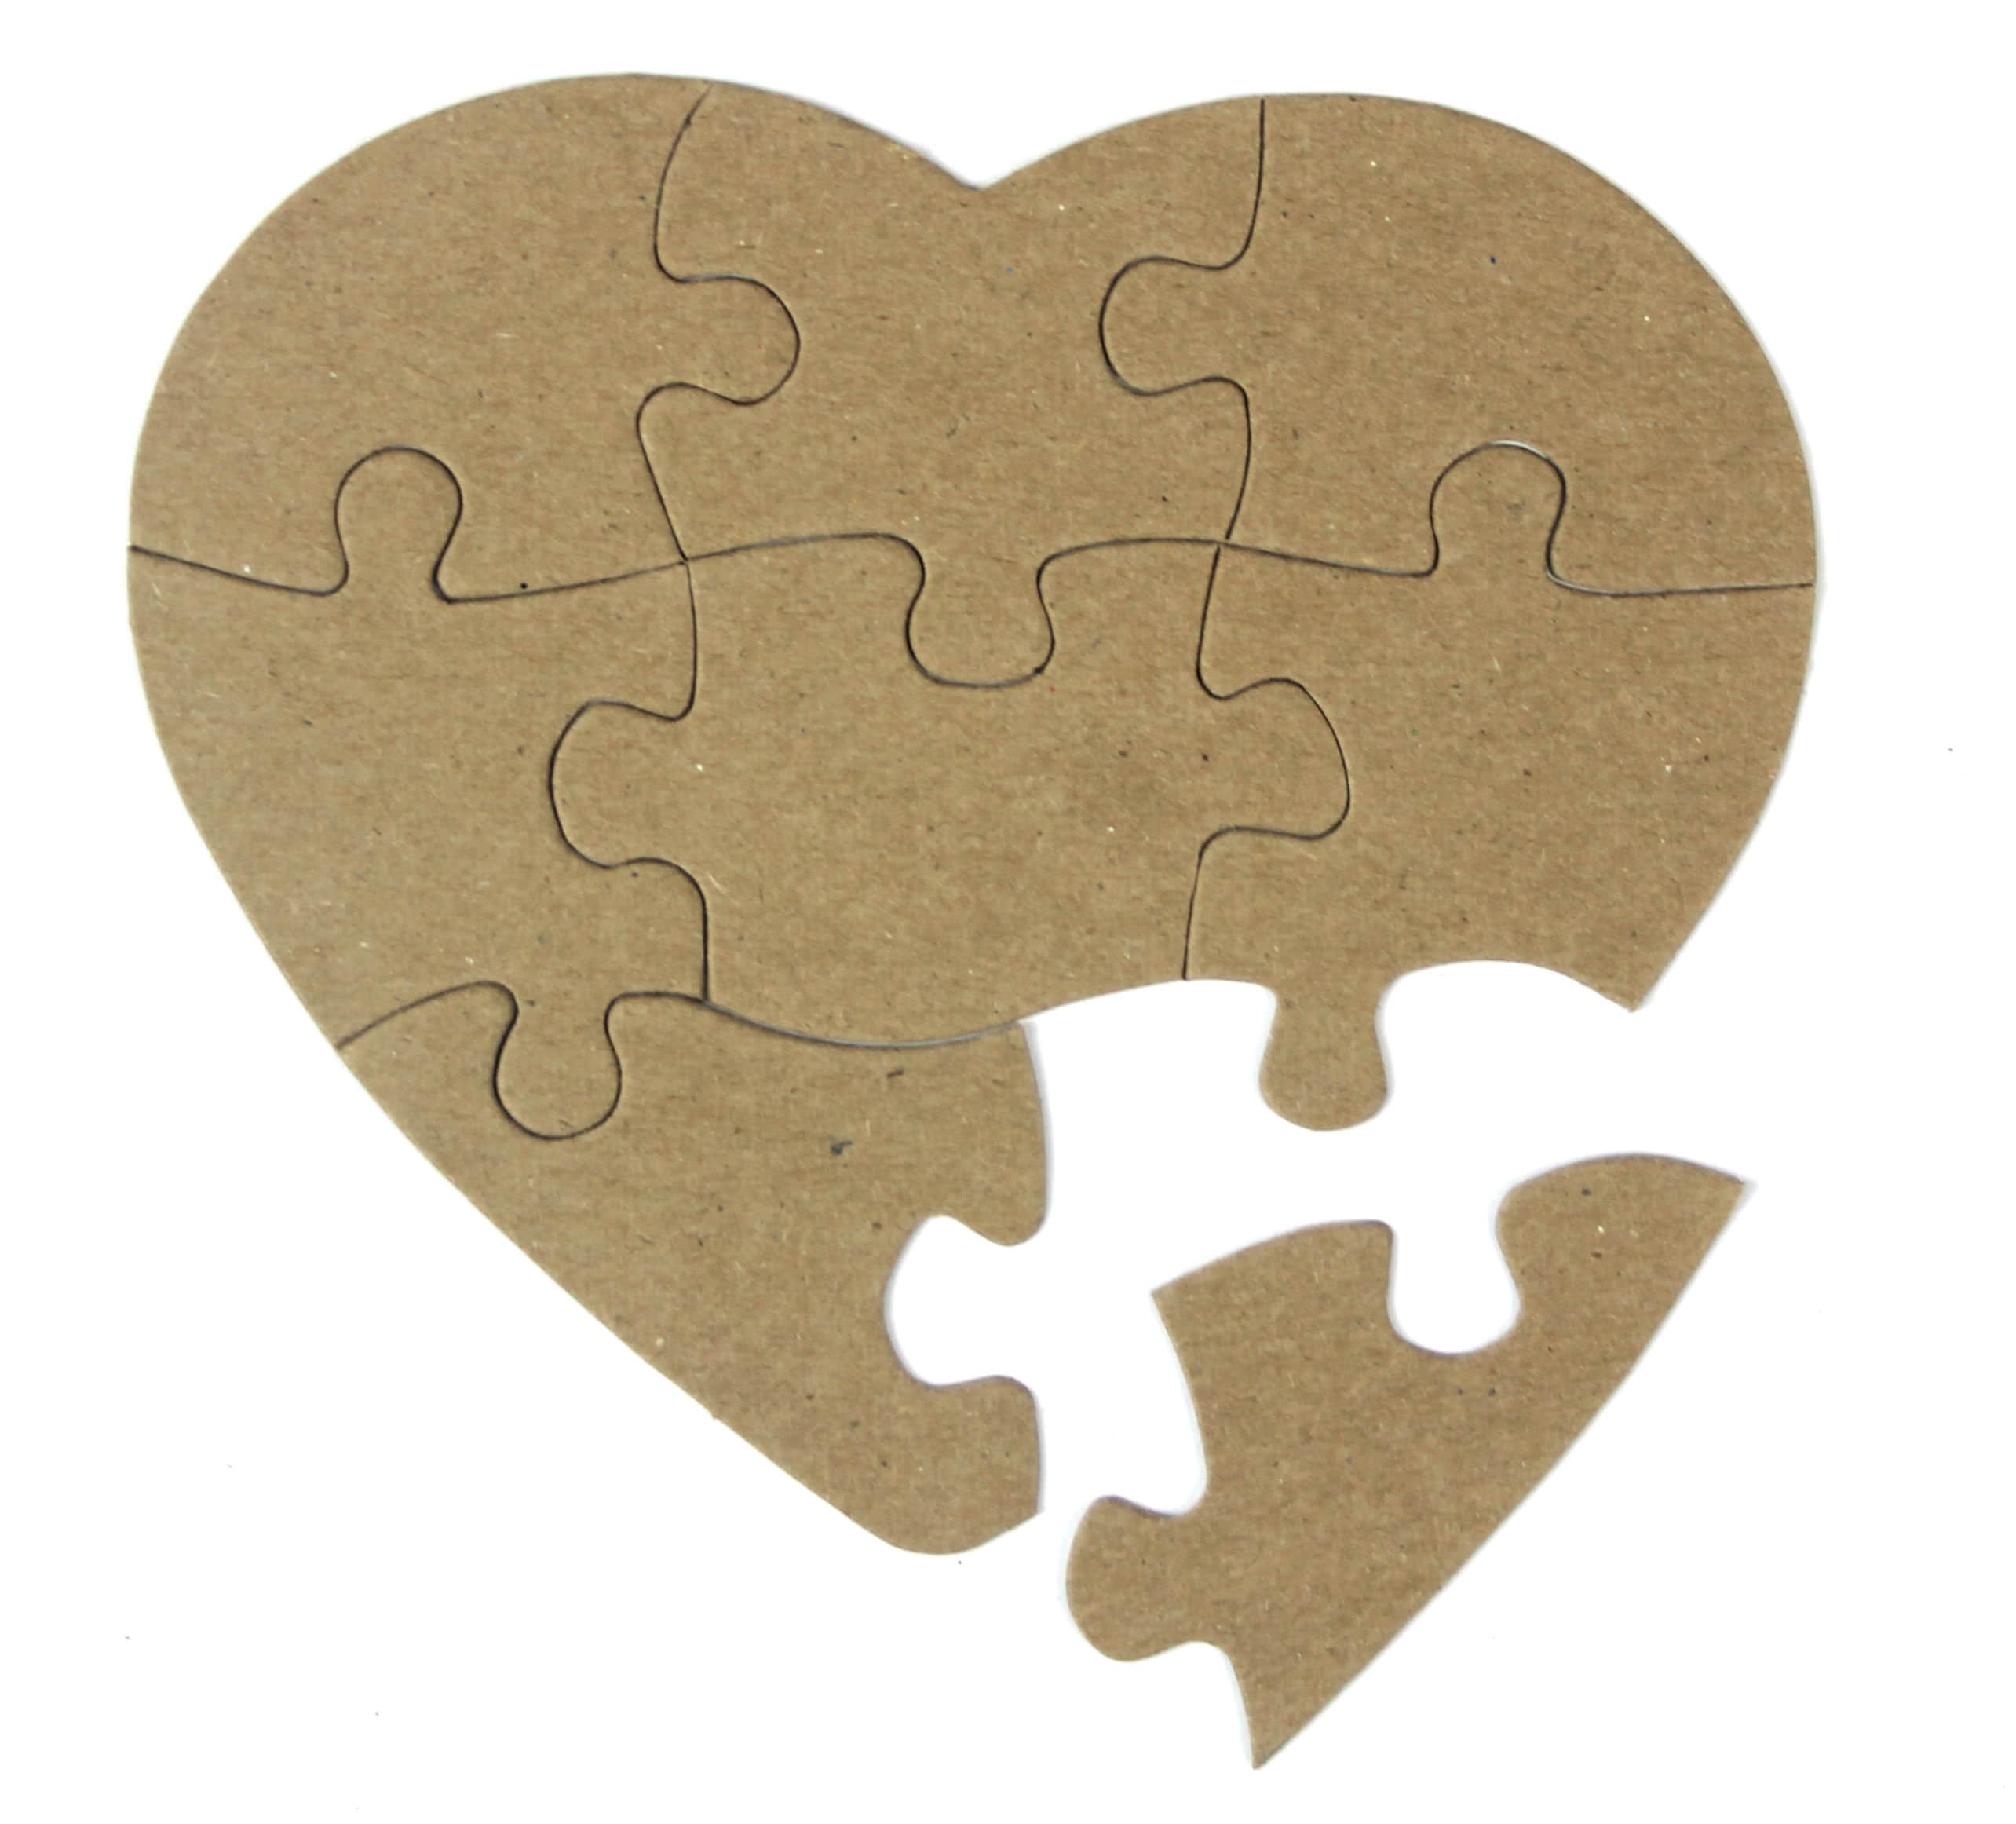 Heart Shaped Jigsaw Puzzle 8 Piece Heart Puzzle Bare